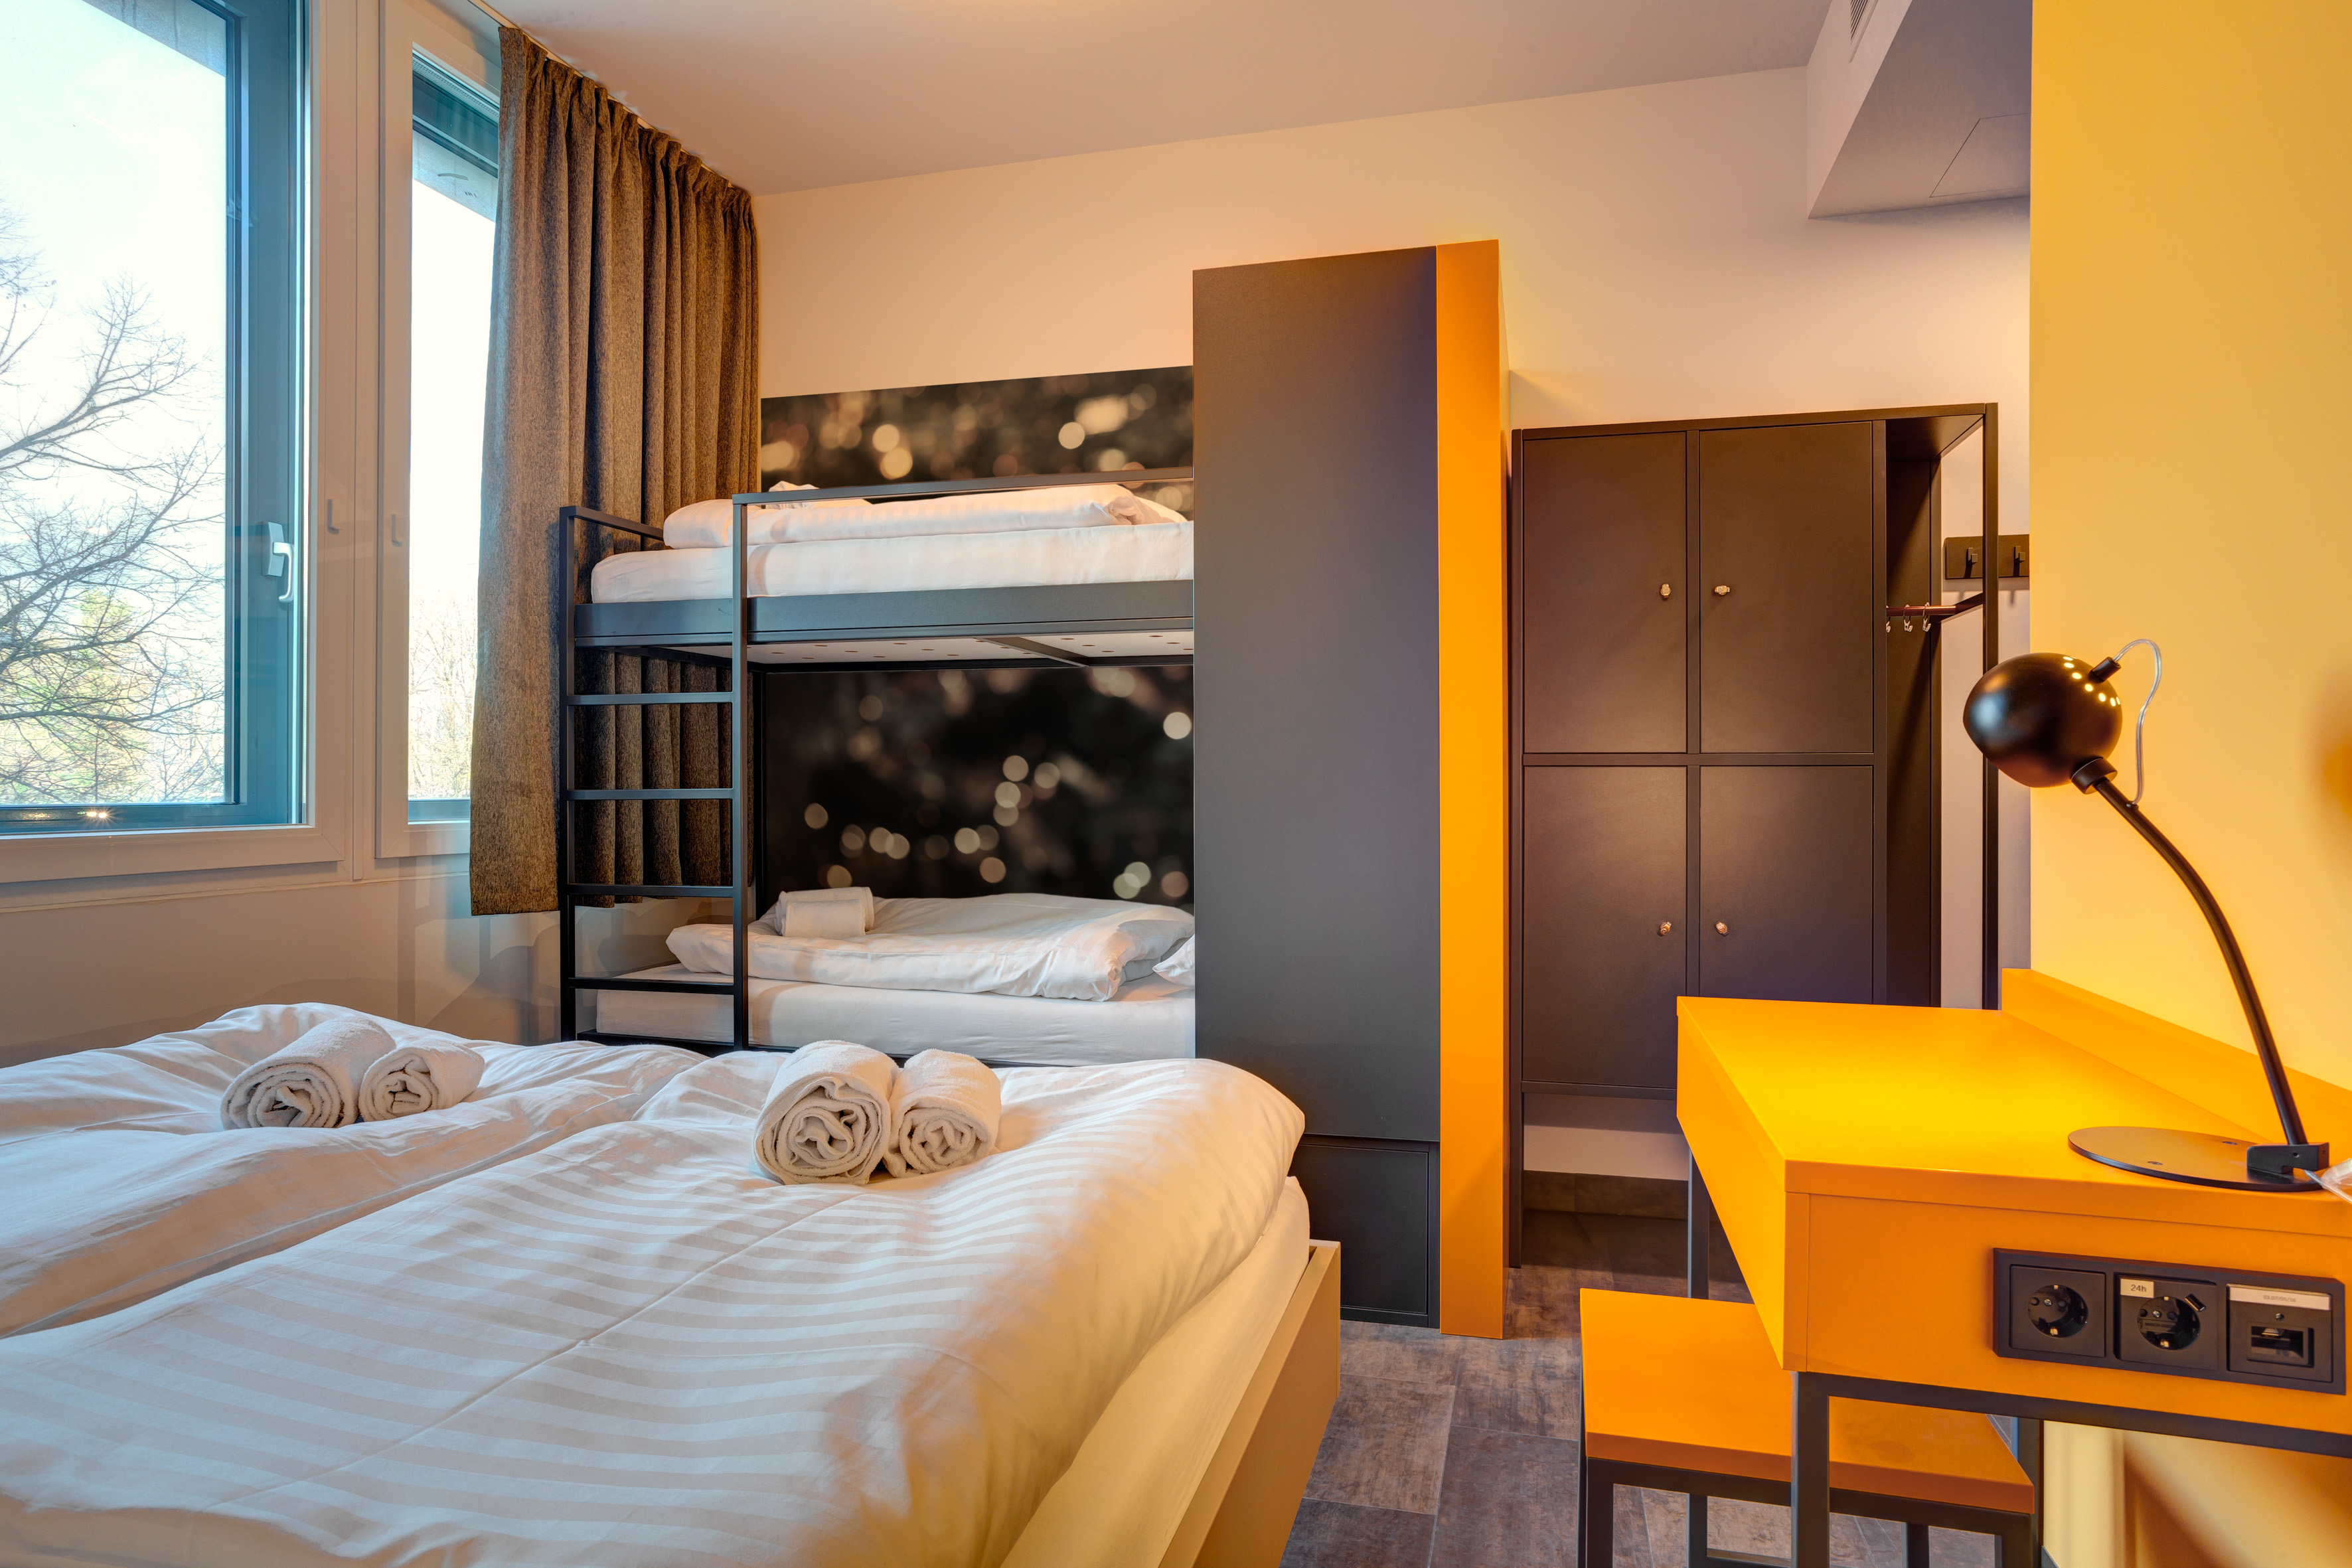 Meininger hotels in munich central affordable modern for Gunstige hotels in munchen